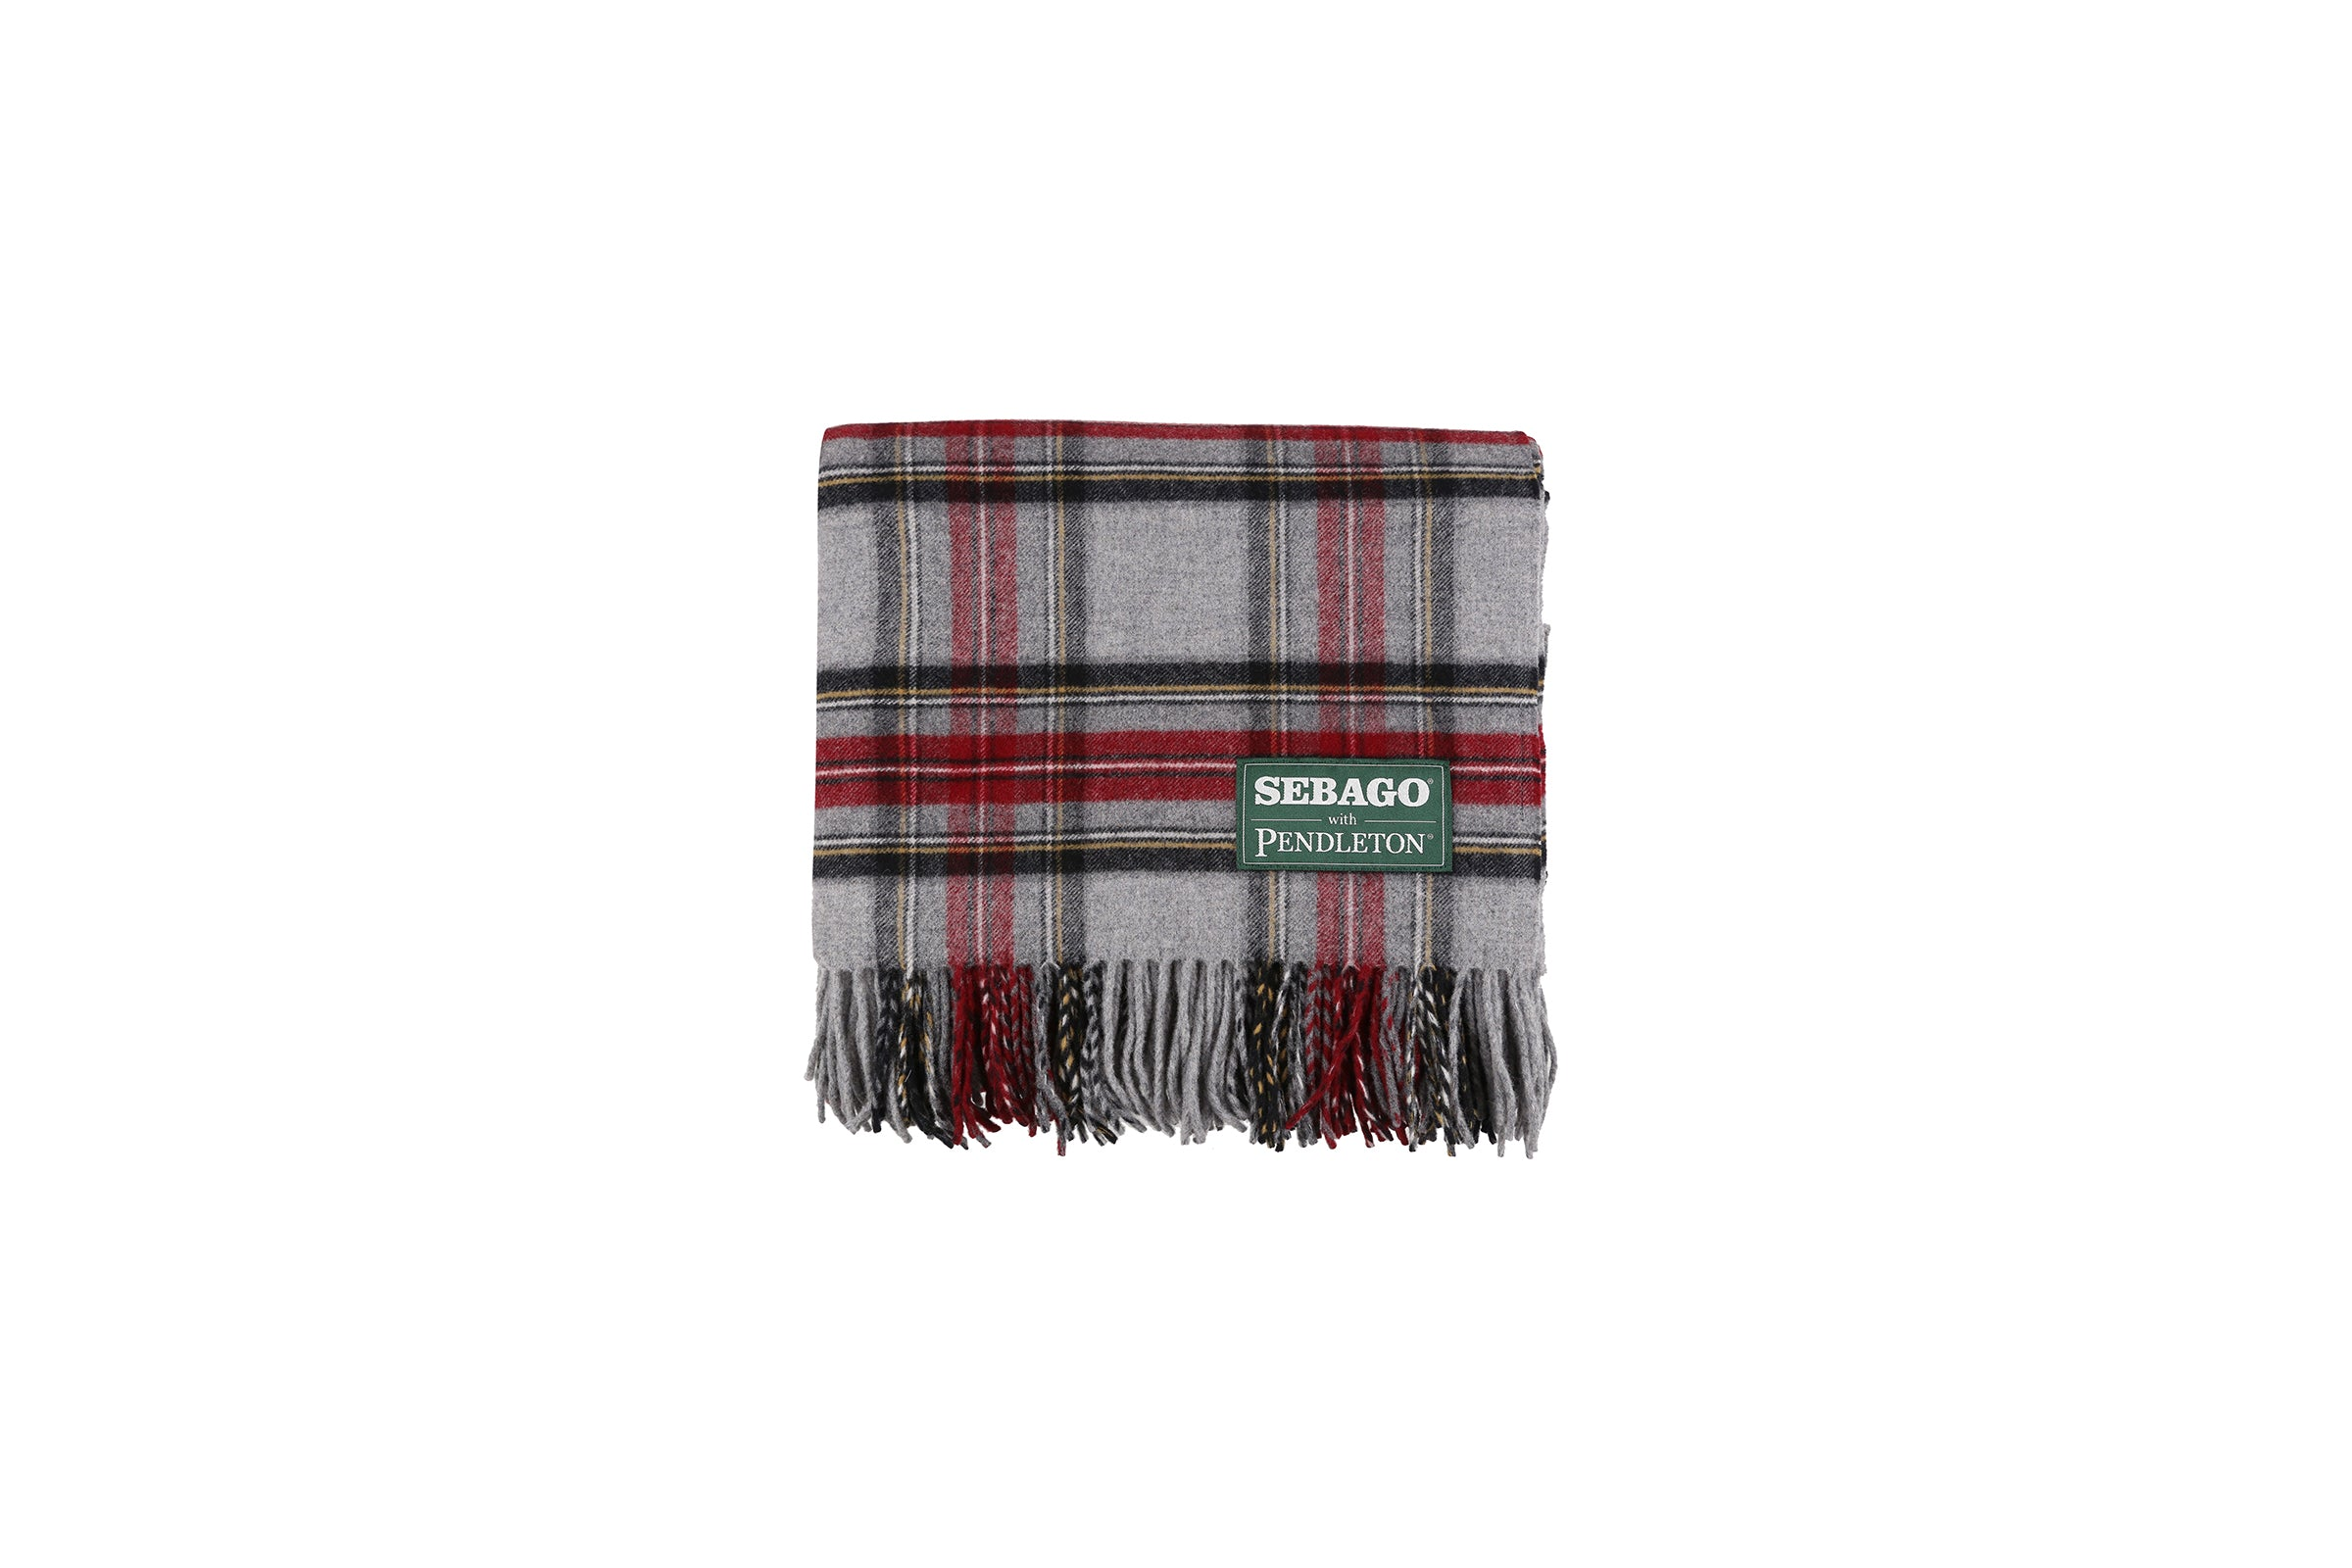 Pendleton 5th Avenue Blanket x Sebago